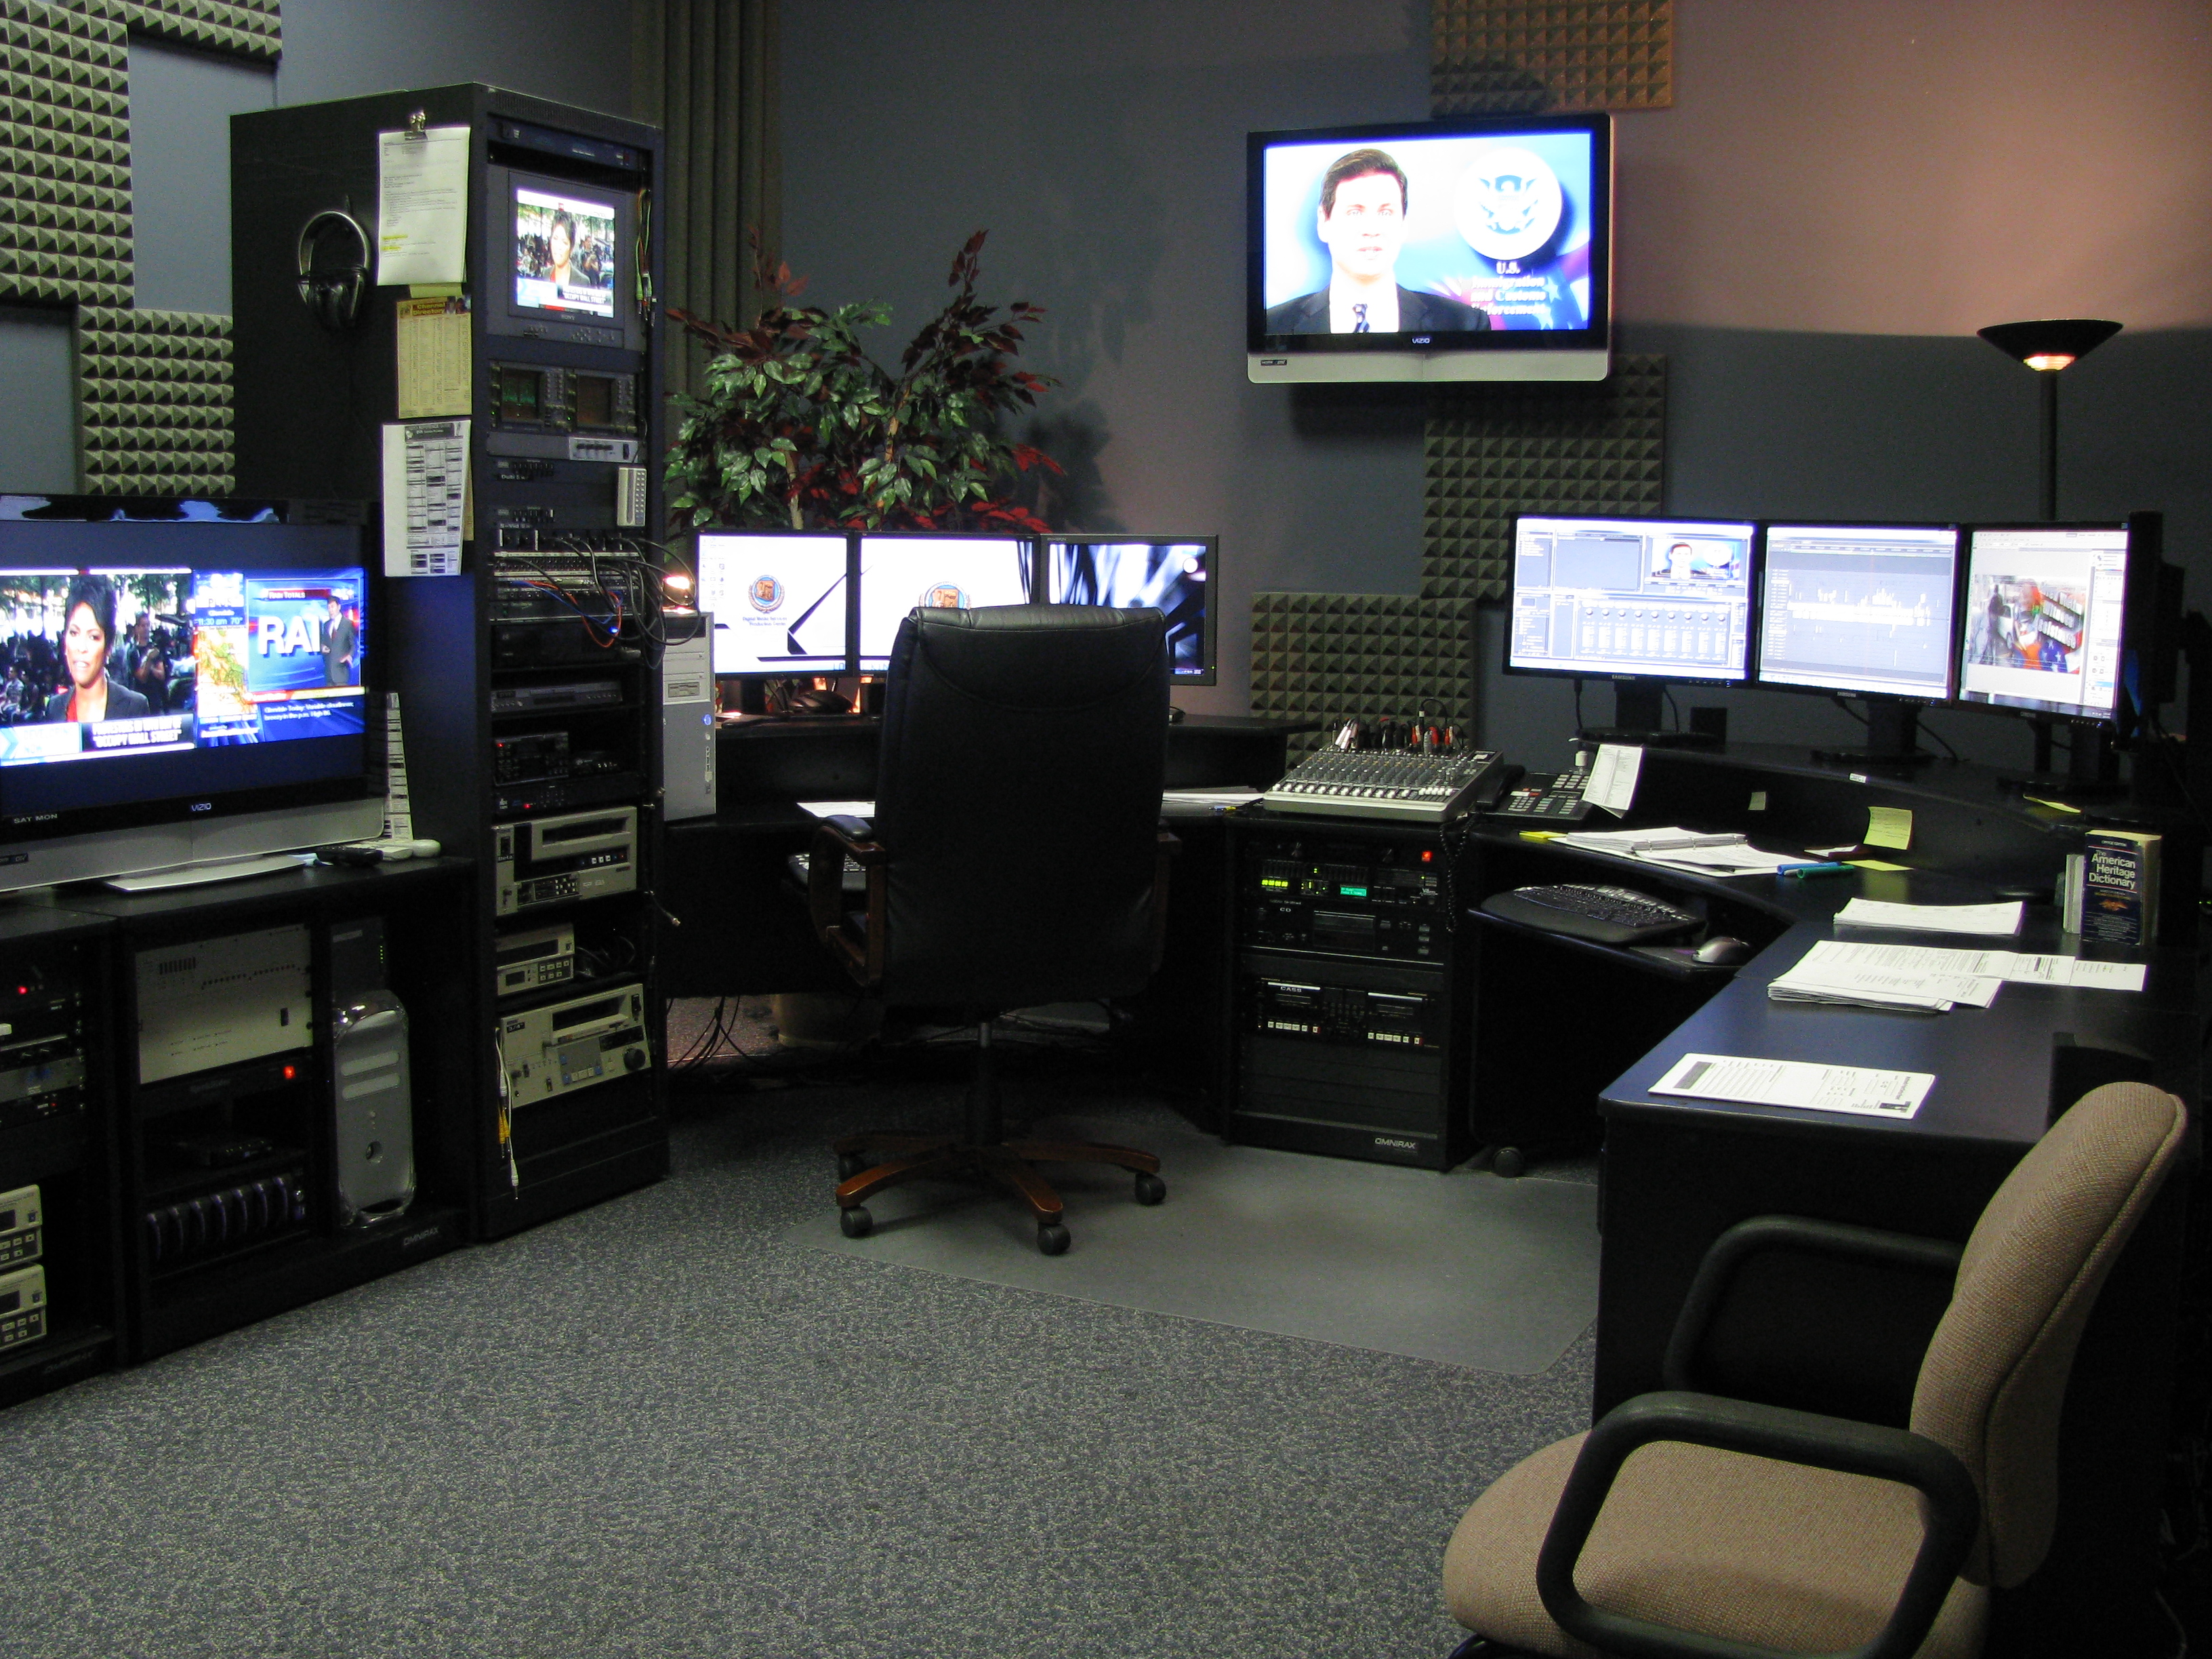 Inside the video production room.